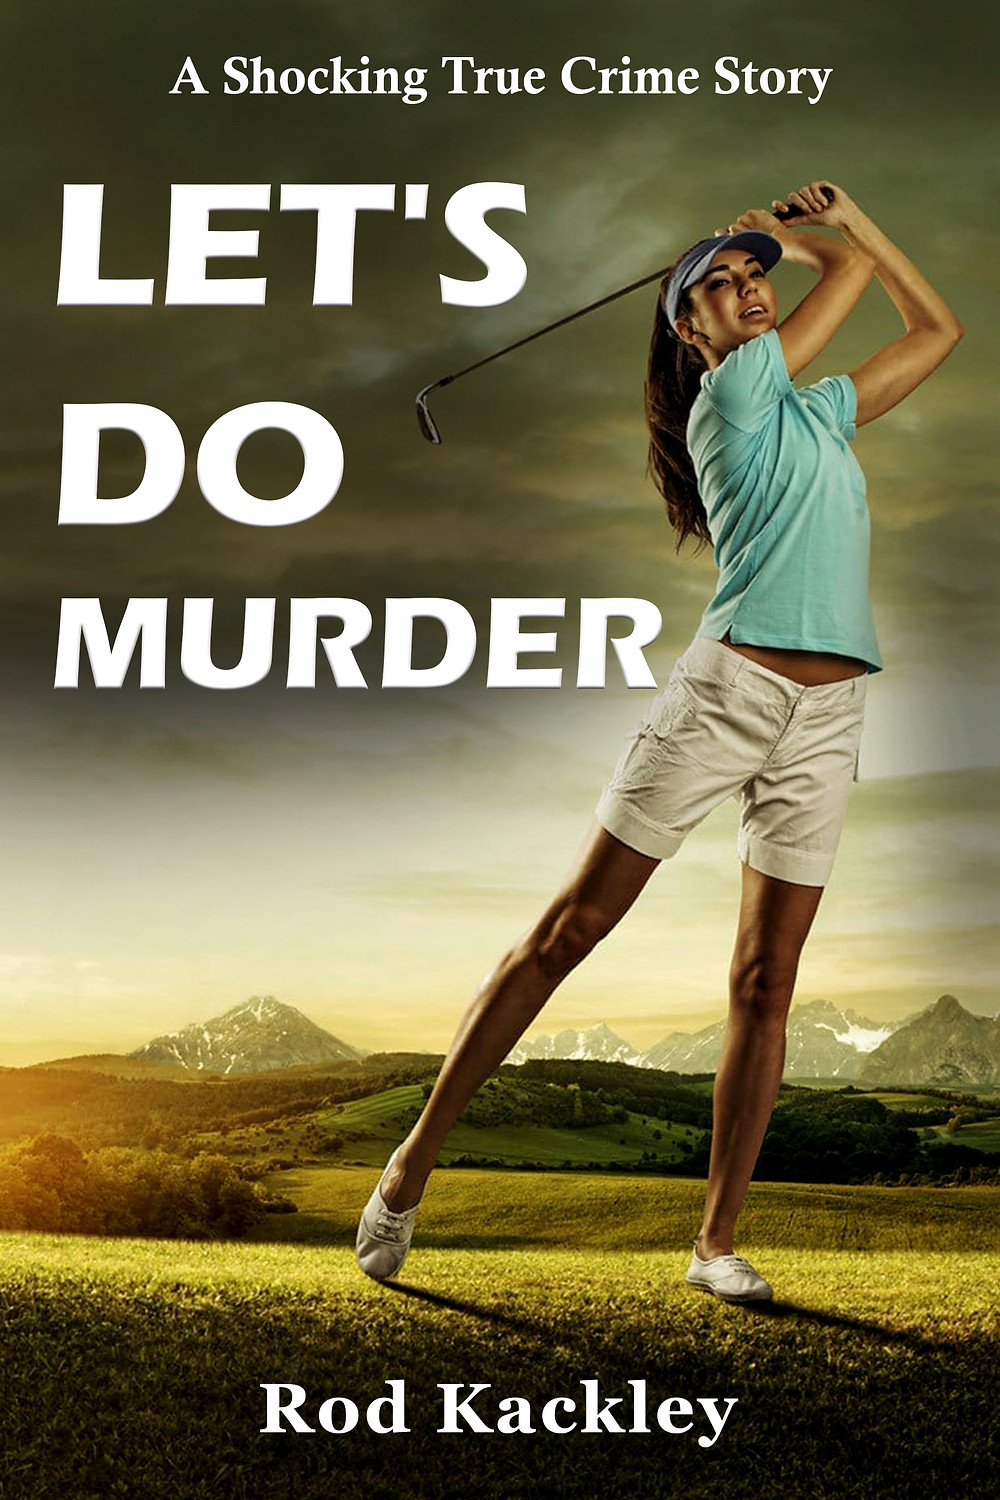 Let's Do Murder: A Shocking True Crime Story by Rod Kackley